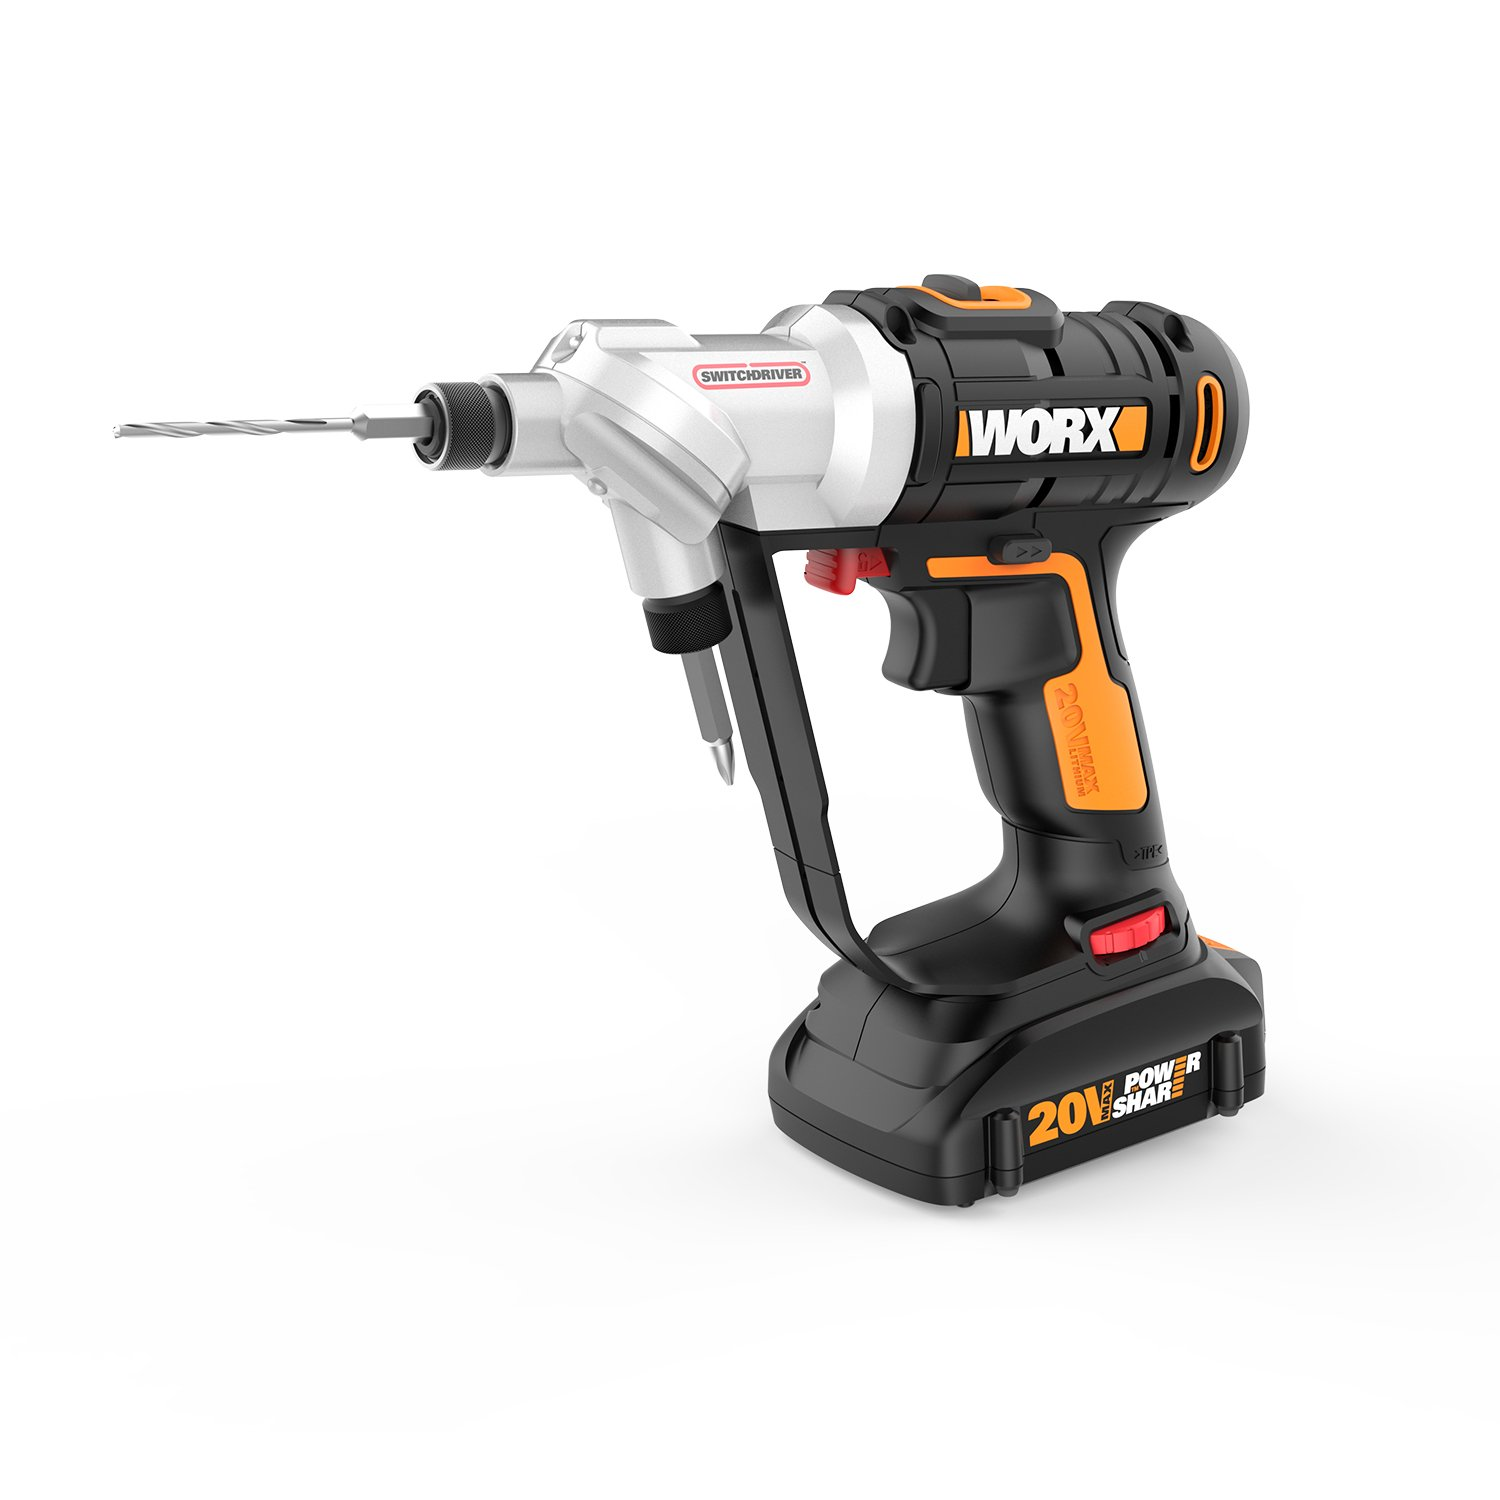 lightweight pick - best lightweight product - worx wx176l 20v 2-in-1 cordless drill and driver